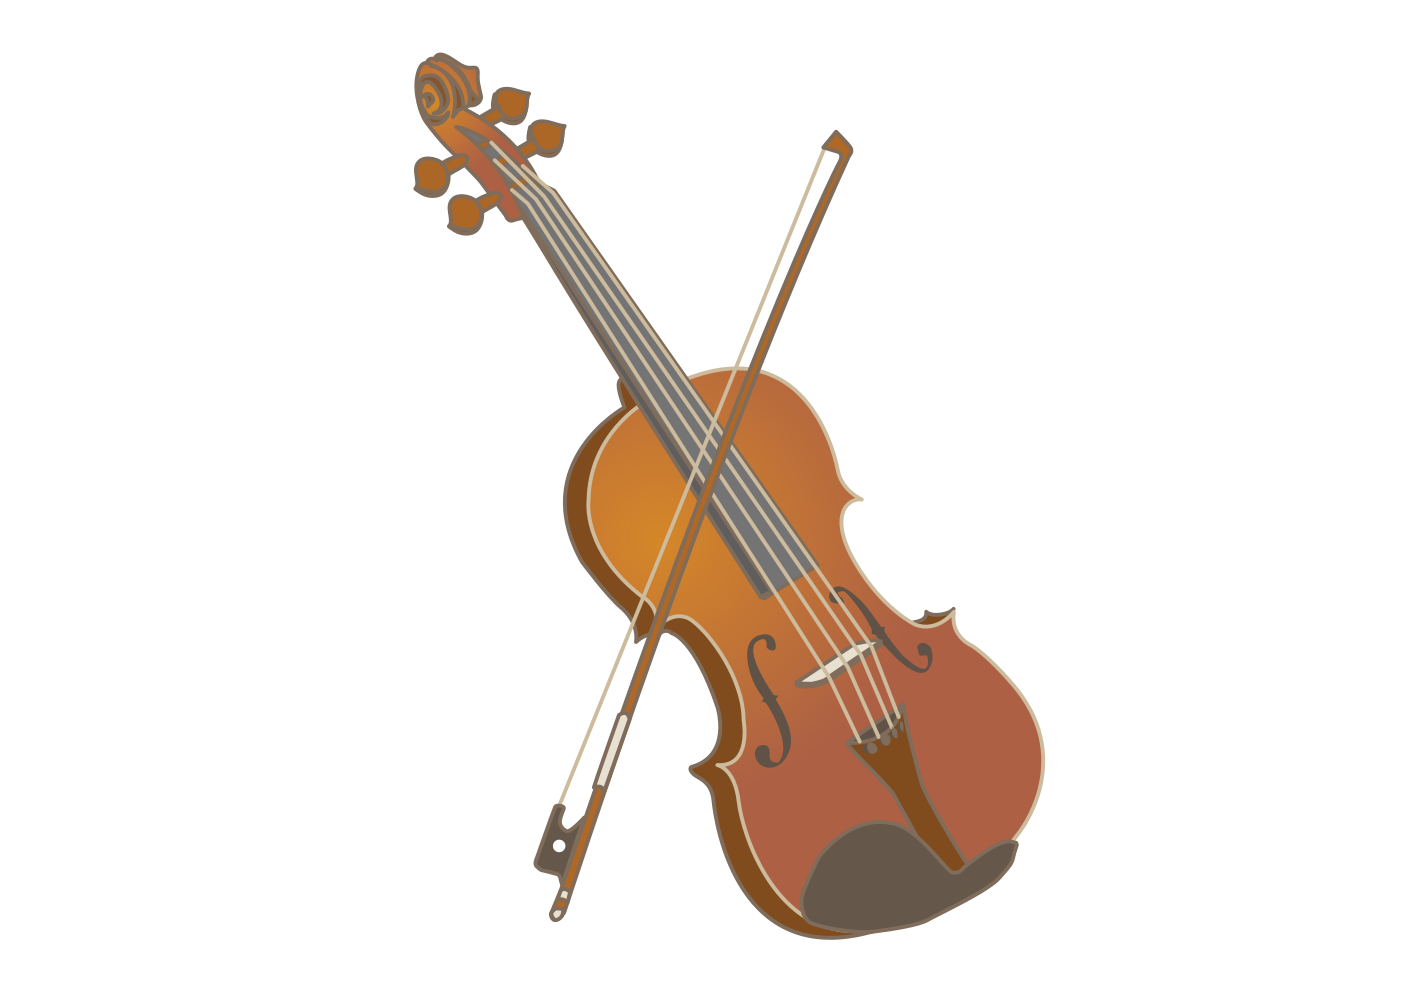 onlinelabels clip art violin and bow rh onlinelabels com free violin clipart clip art violin free